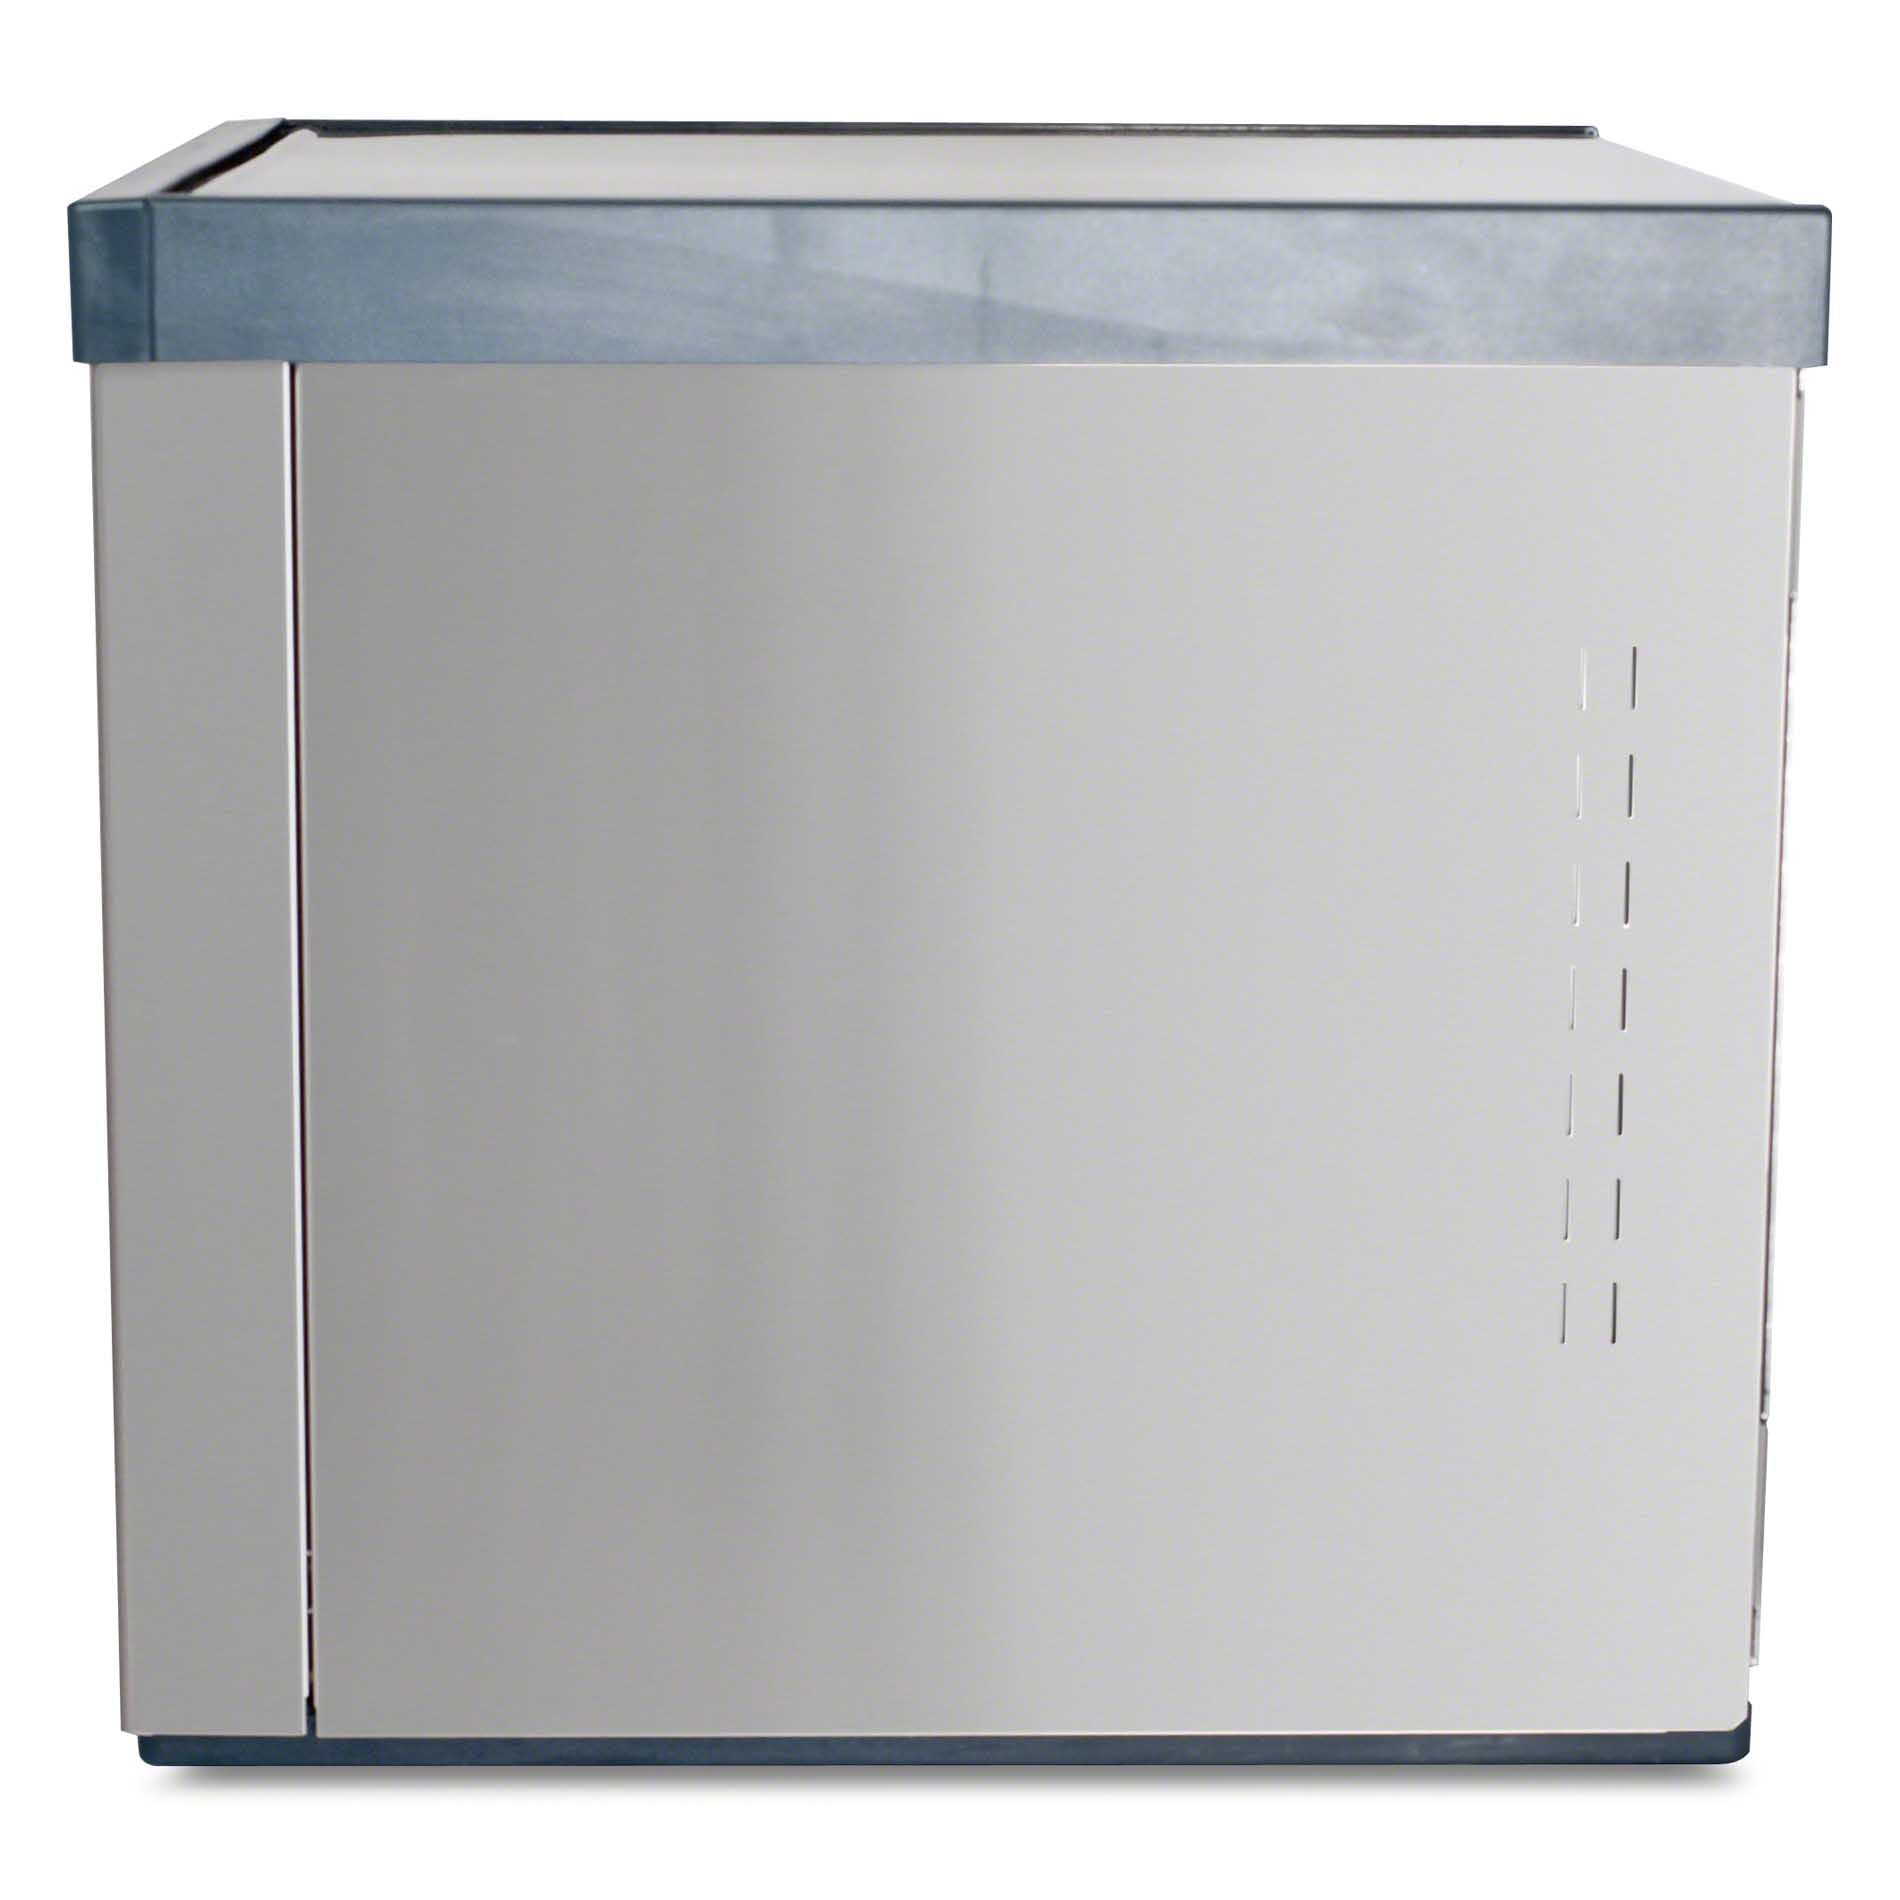 Scotsman - C0322SW-1A 366 lb Half Size Cube Ice Machine - Prodigy Series - sold by Food Service Warehouse